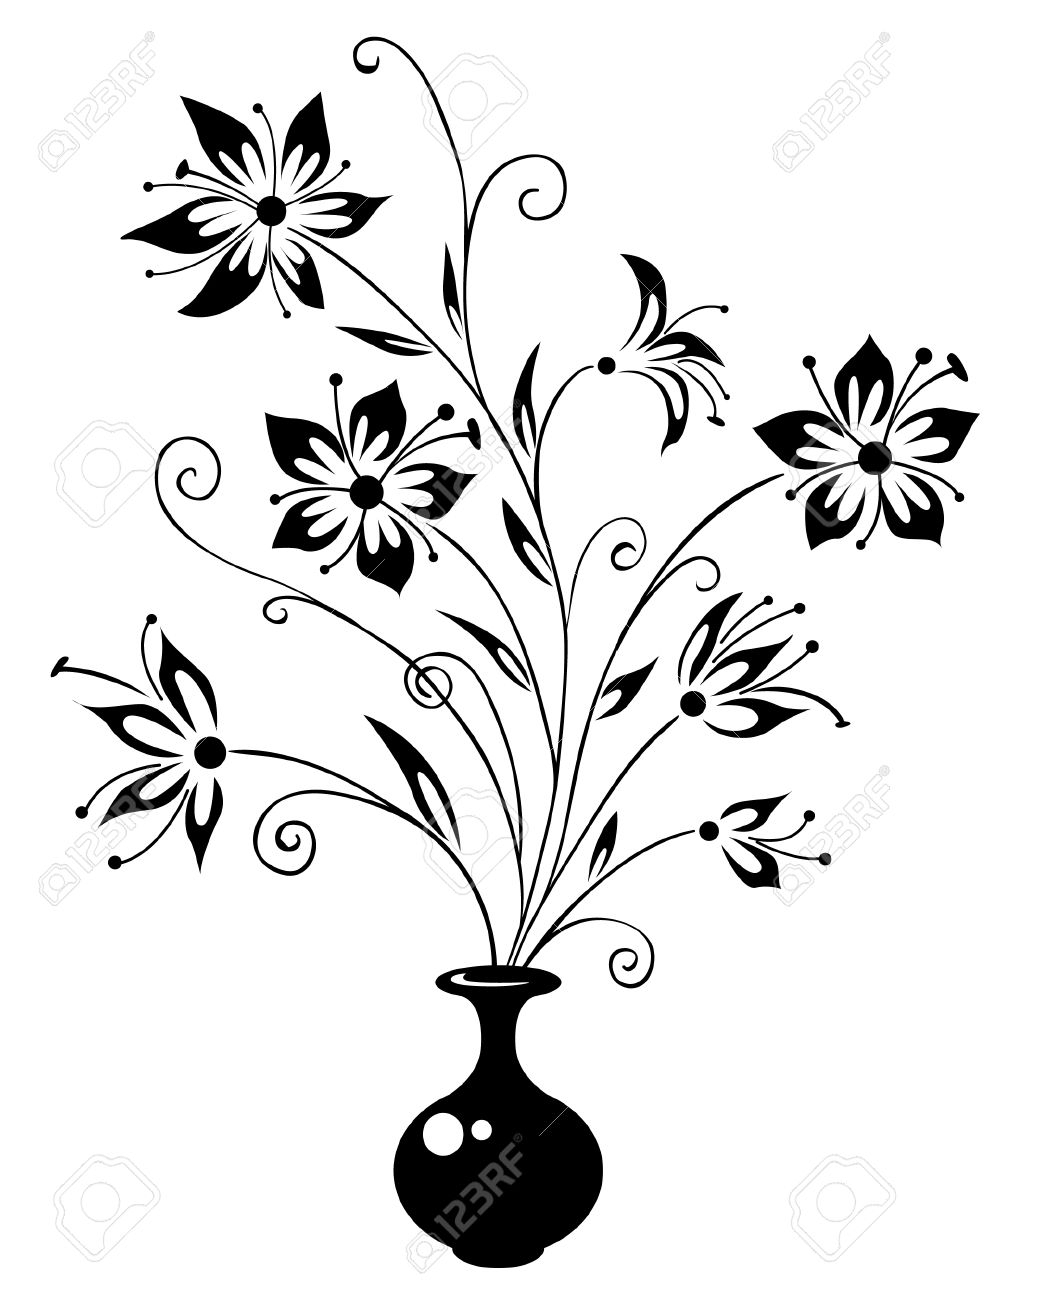 1040x1300 Photos Pencil Drawing Of Flower Vase,